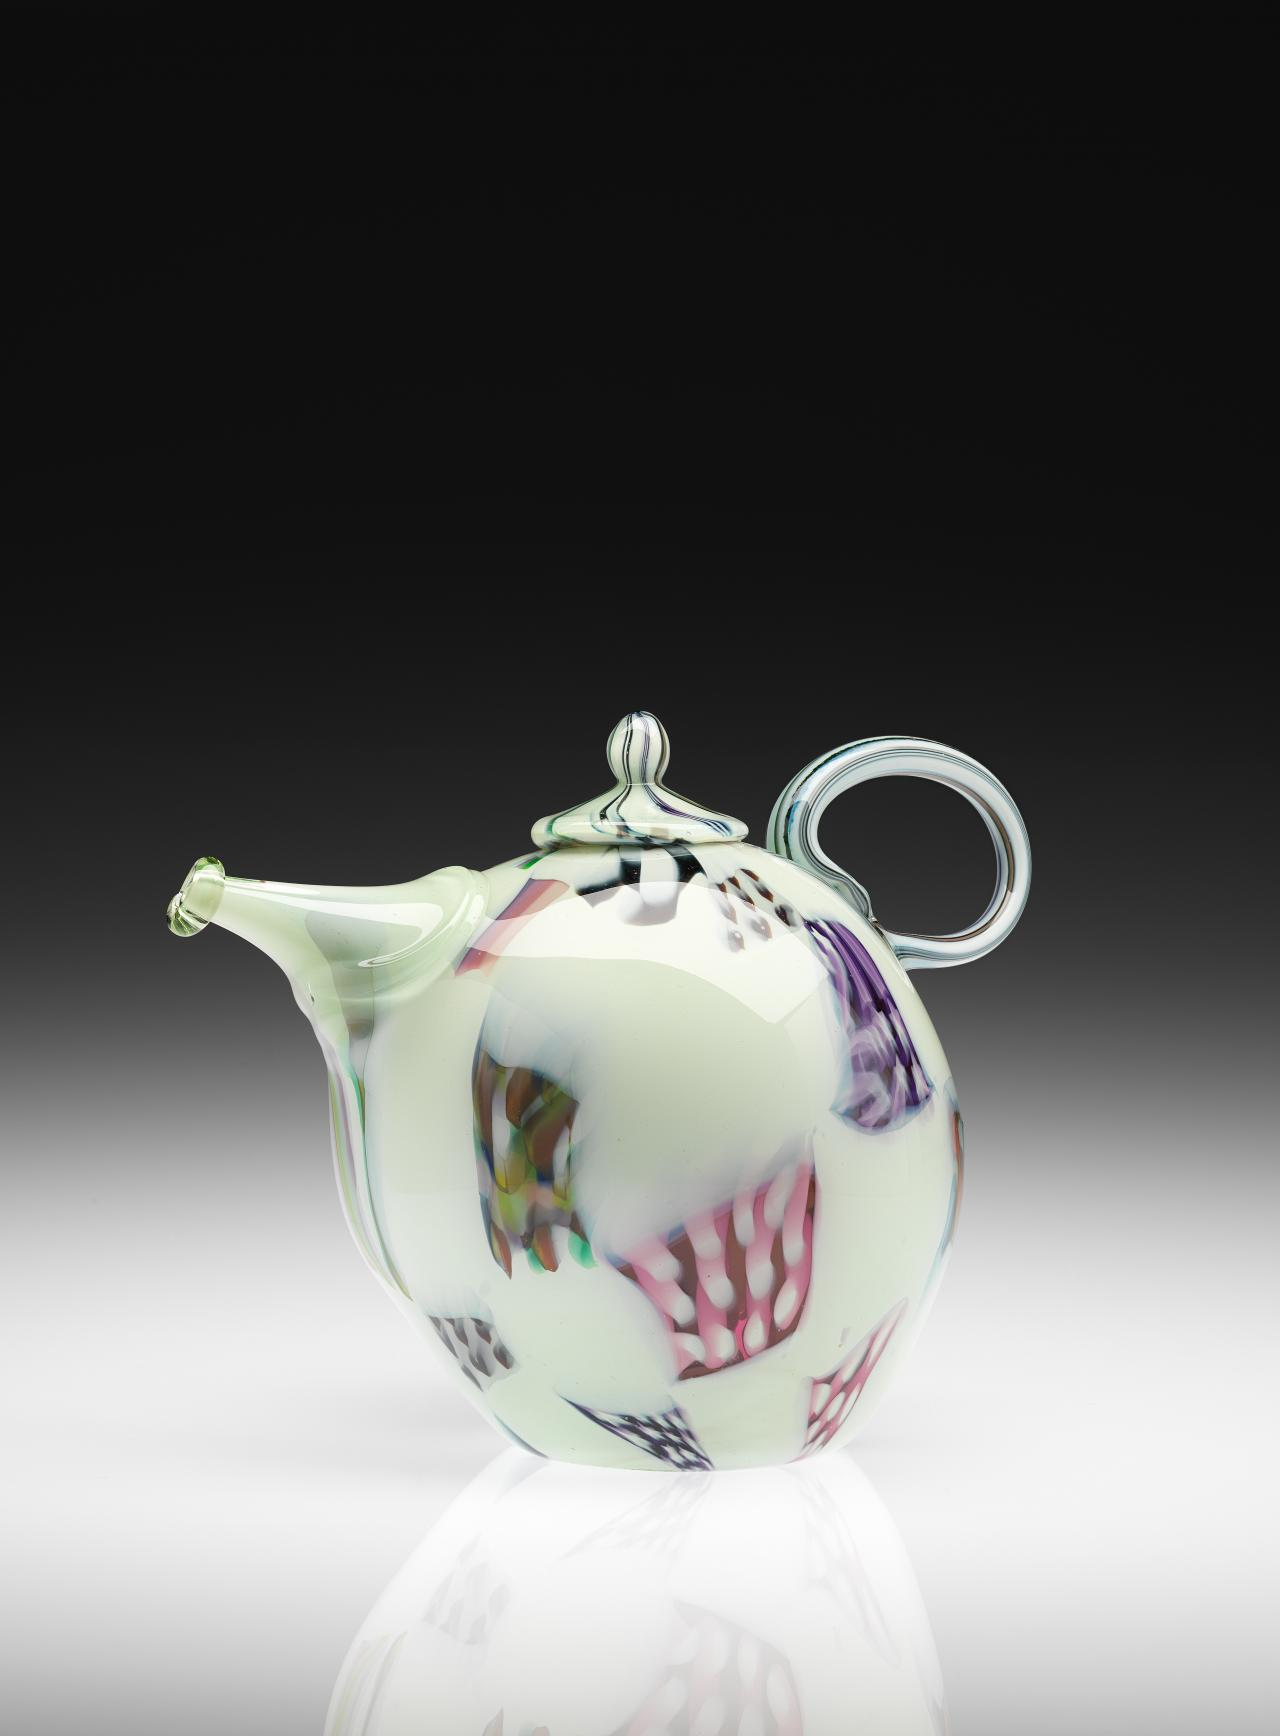 Murrini on white ground bulbous teapot